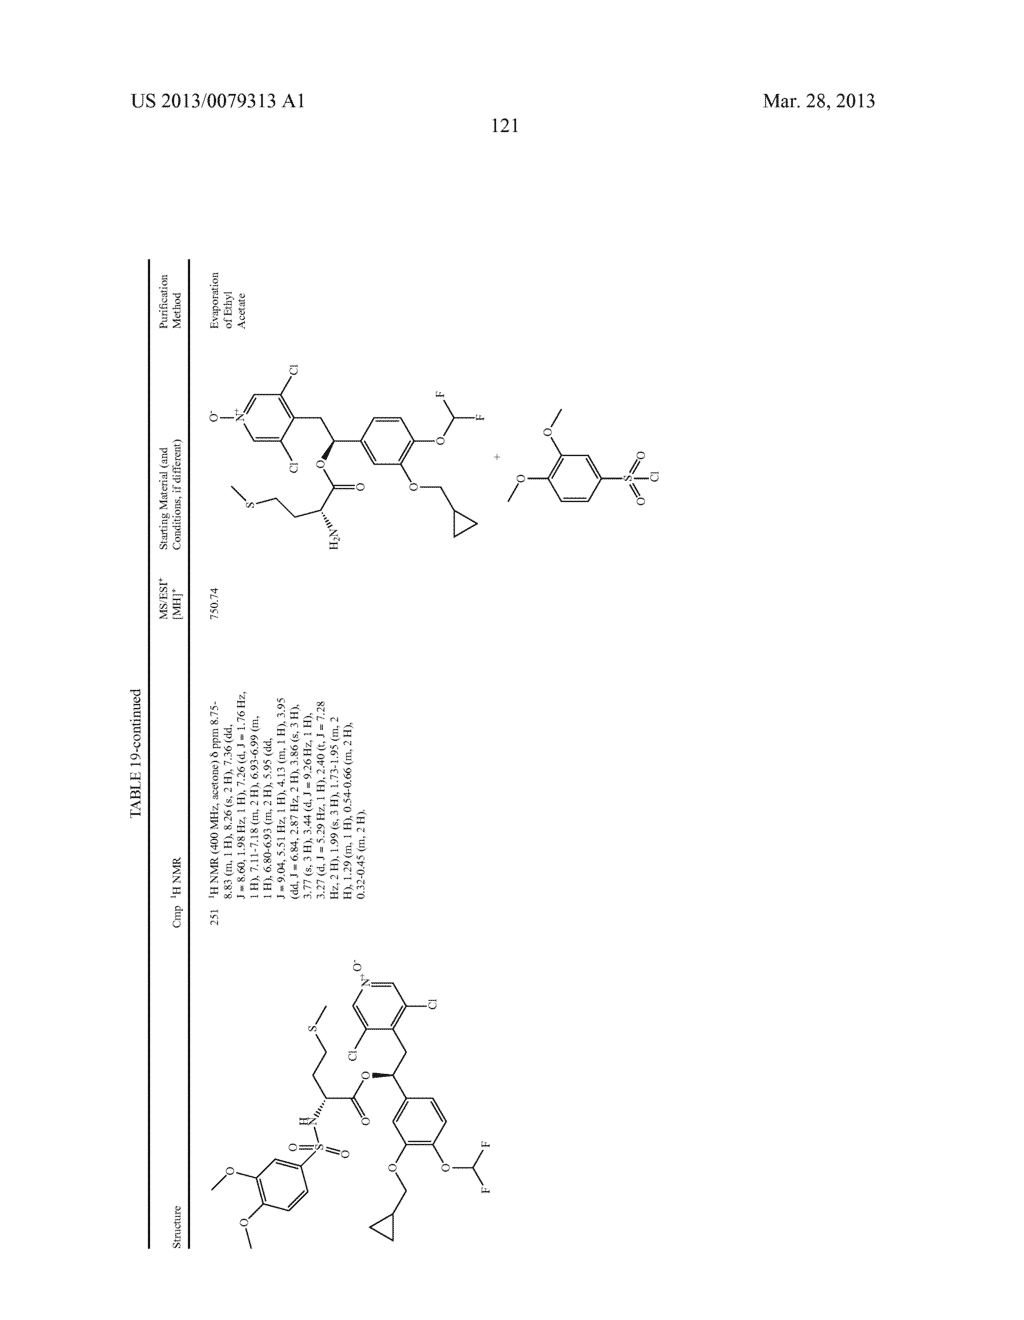 DERIVATIVES OF 1-PHENYL-2-PYRIDINYL ALKYL ALCOHOLS AS PHOSPHODIESTERASE     INHIBITORS - diagram, schematic, and image 122